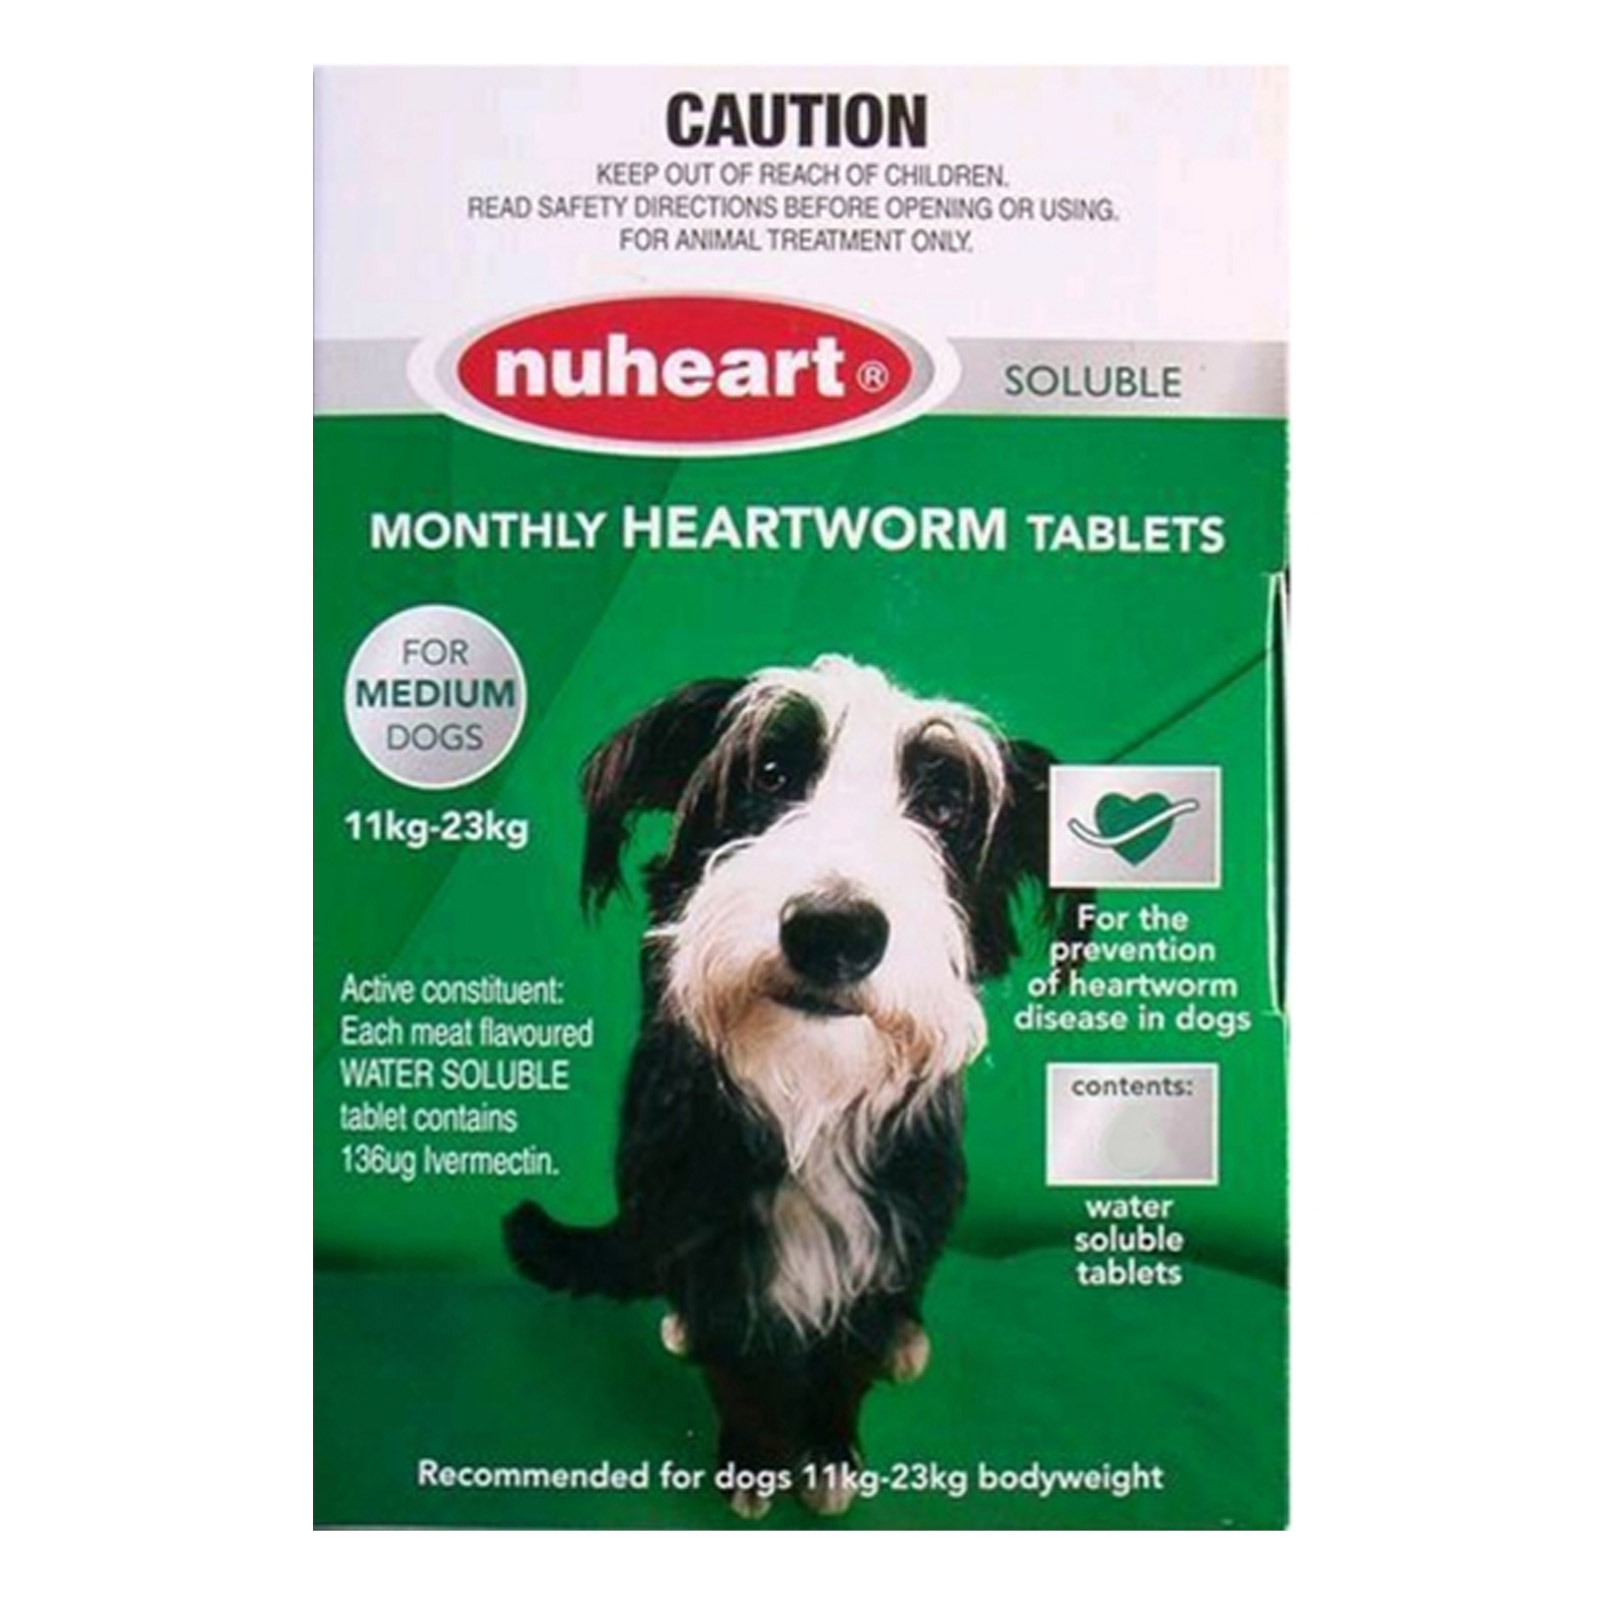 heartgard-plus-generic-nuheart-medium-dogs-26-50lbs-green